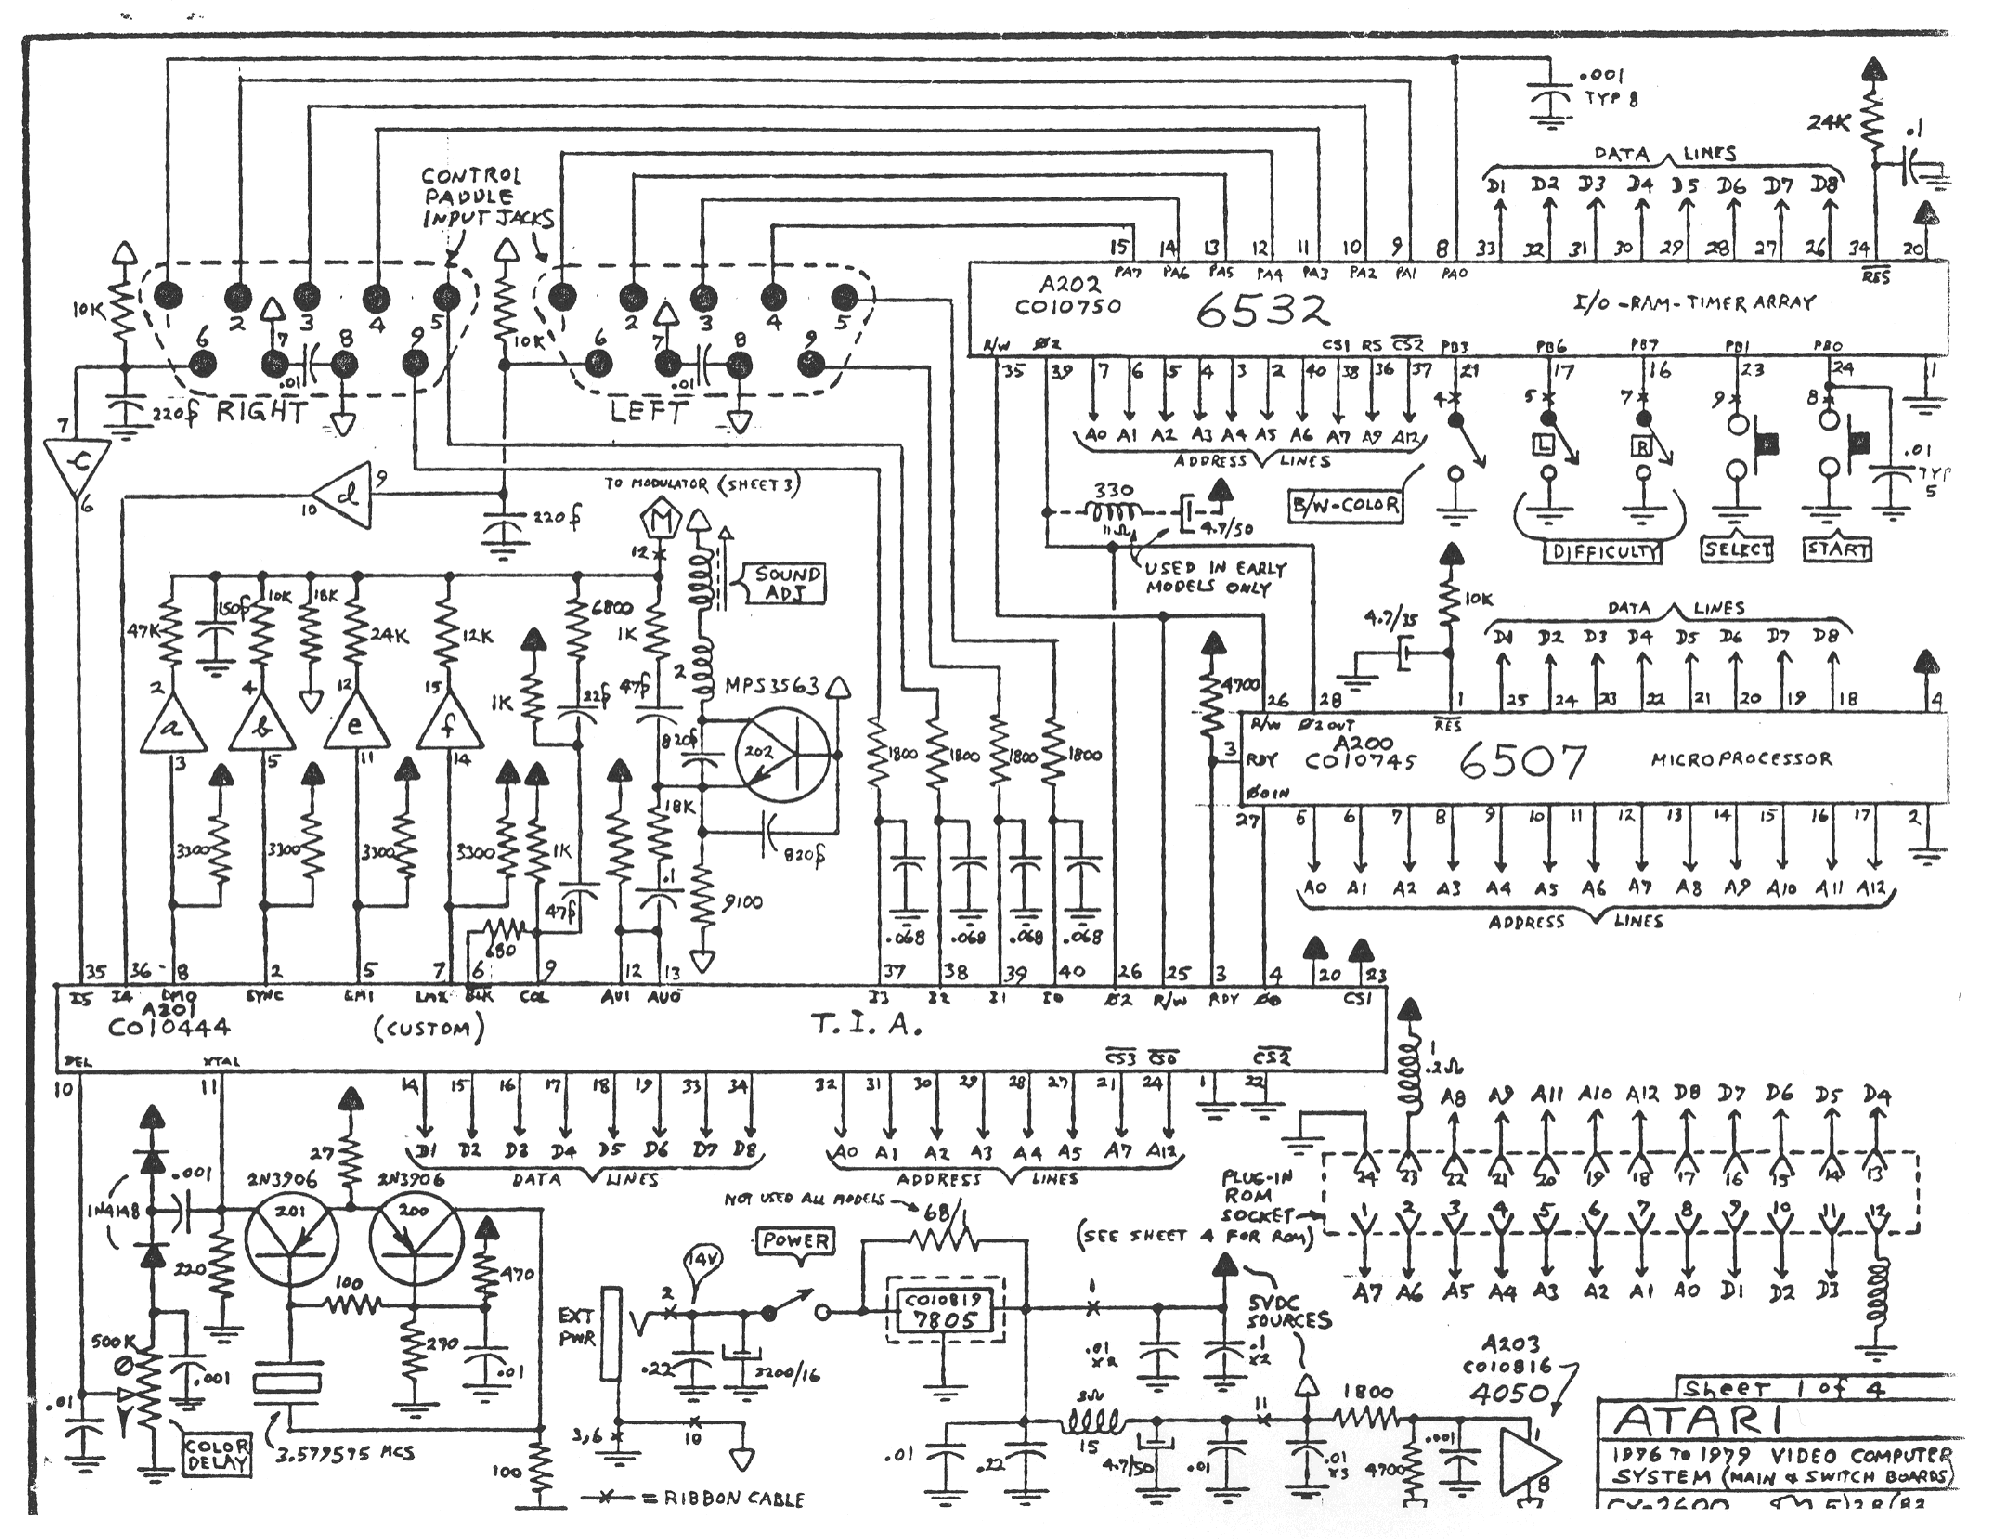 1966 Ford Truck Ignition Wiring Diagram likewise Schemview together with 21340 Truma Ultrastore P 2614 furthermore 2 Humbucker 1 Volume 3 Tone Wiring Diagram in addition Pioneer Deh 1200mp Service Manual. on schematic diagram in wiring